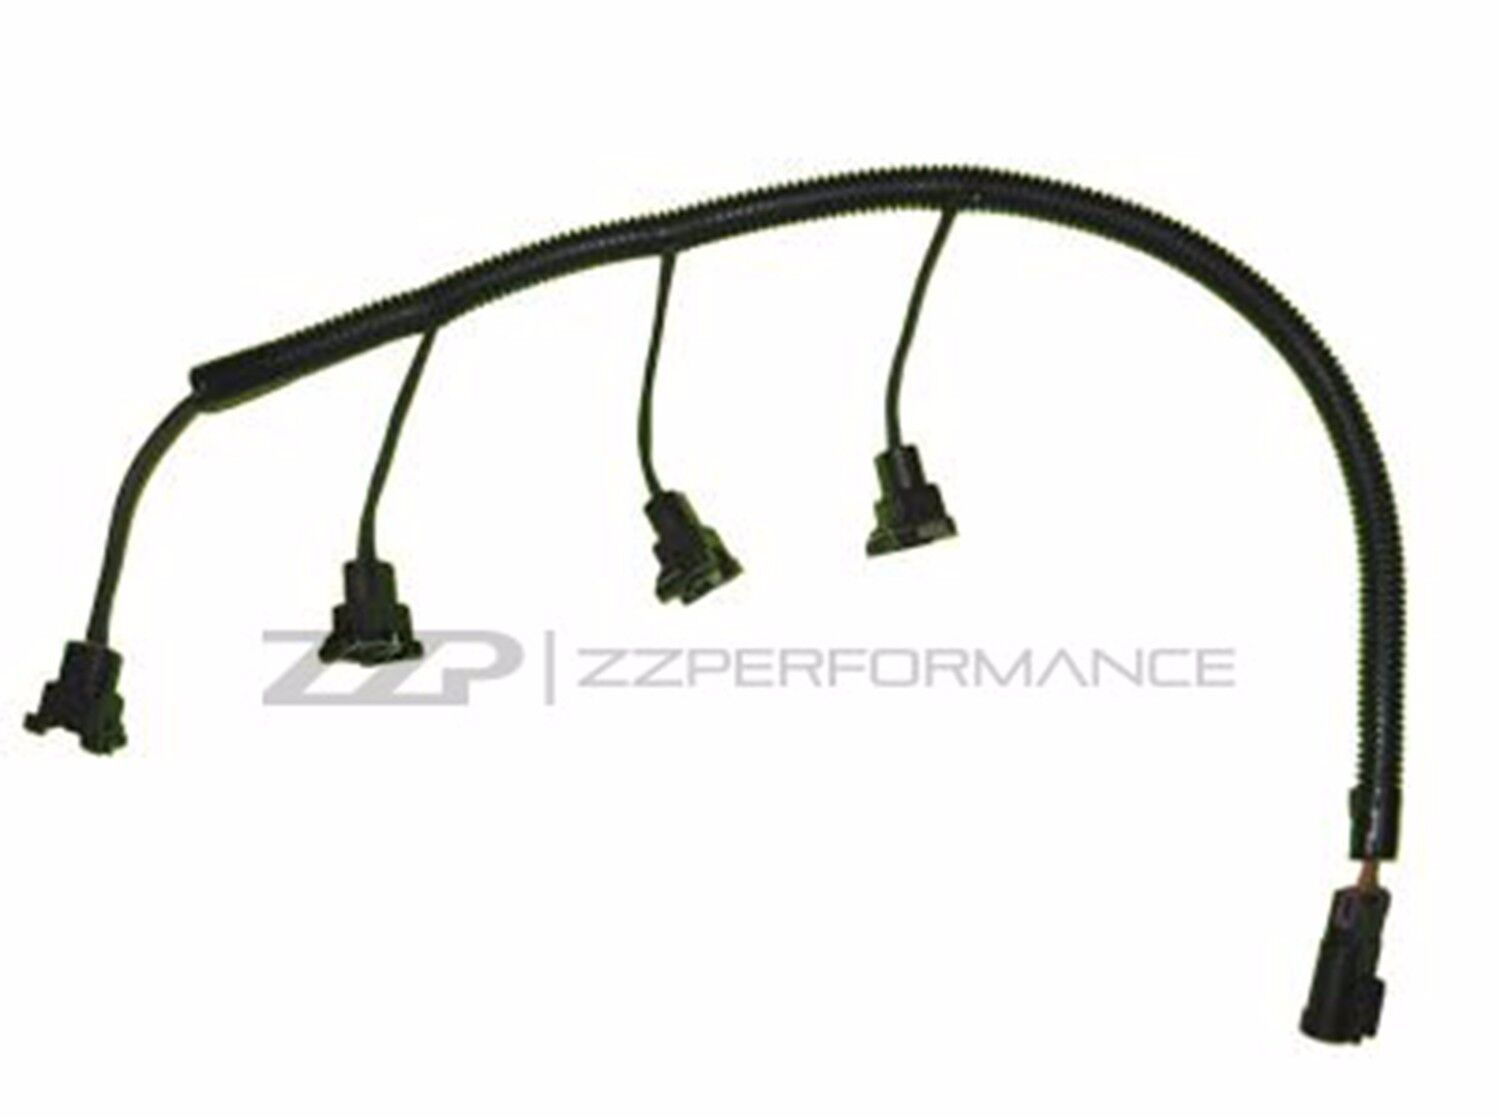 Zzperformance Lsj 2 0 Ev1 Fuel Injector Upgrade Adaptor Harness Cobalt Ss Ion